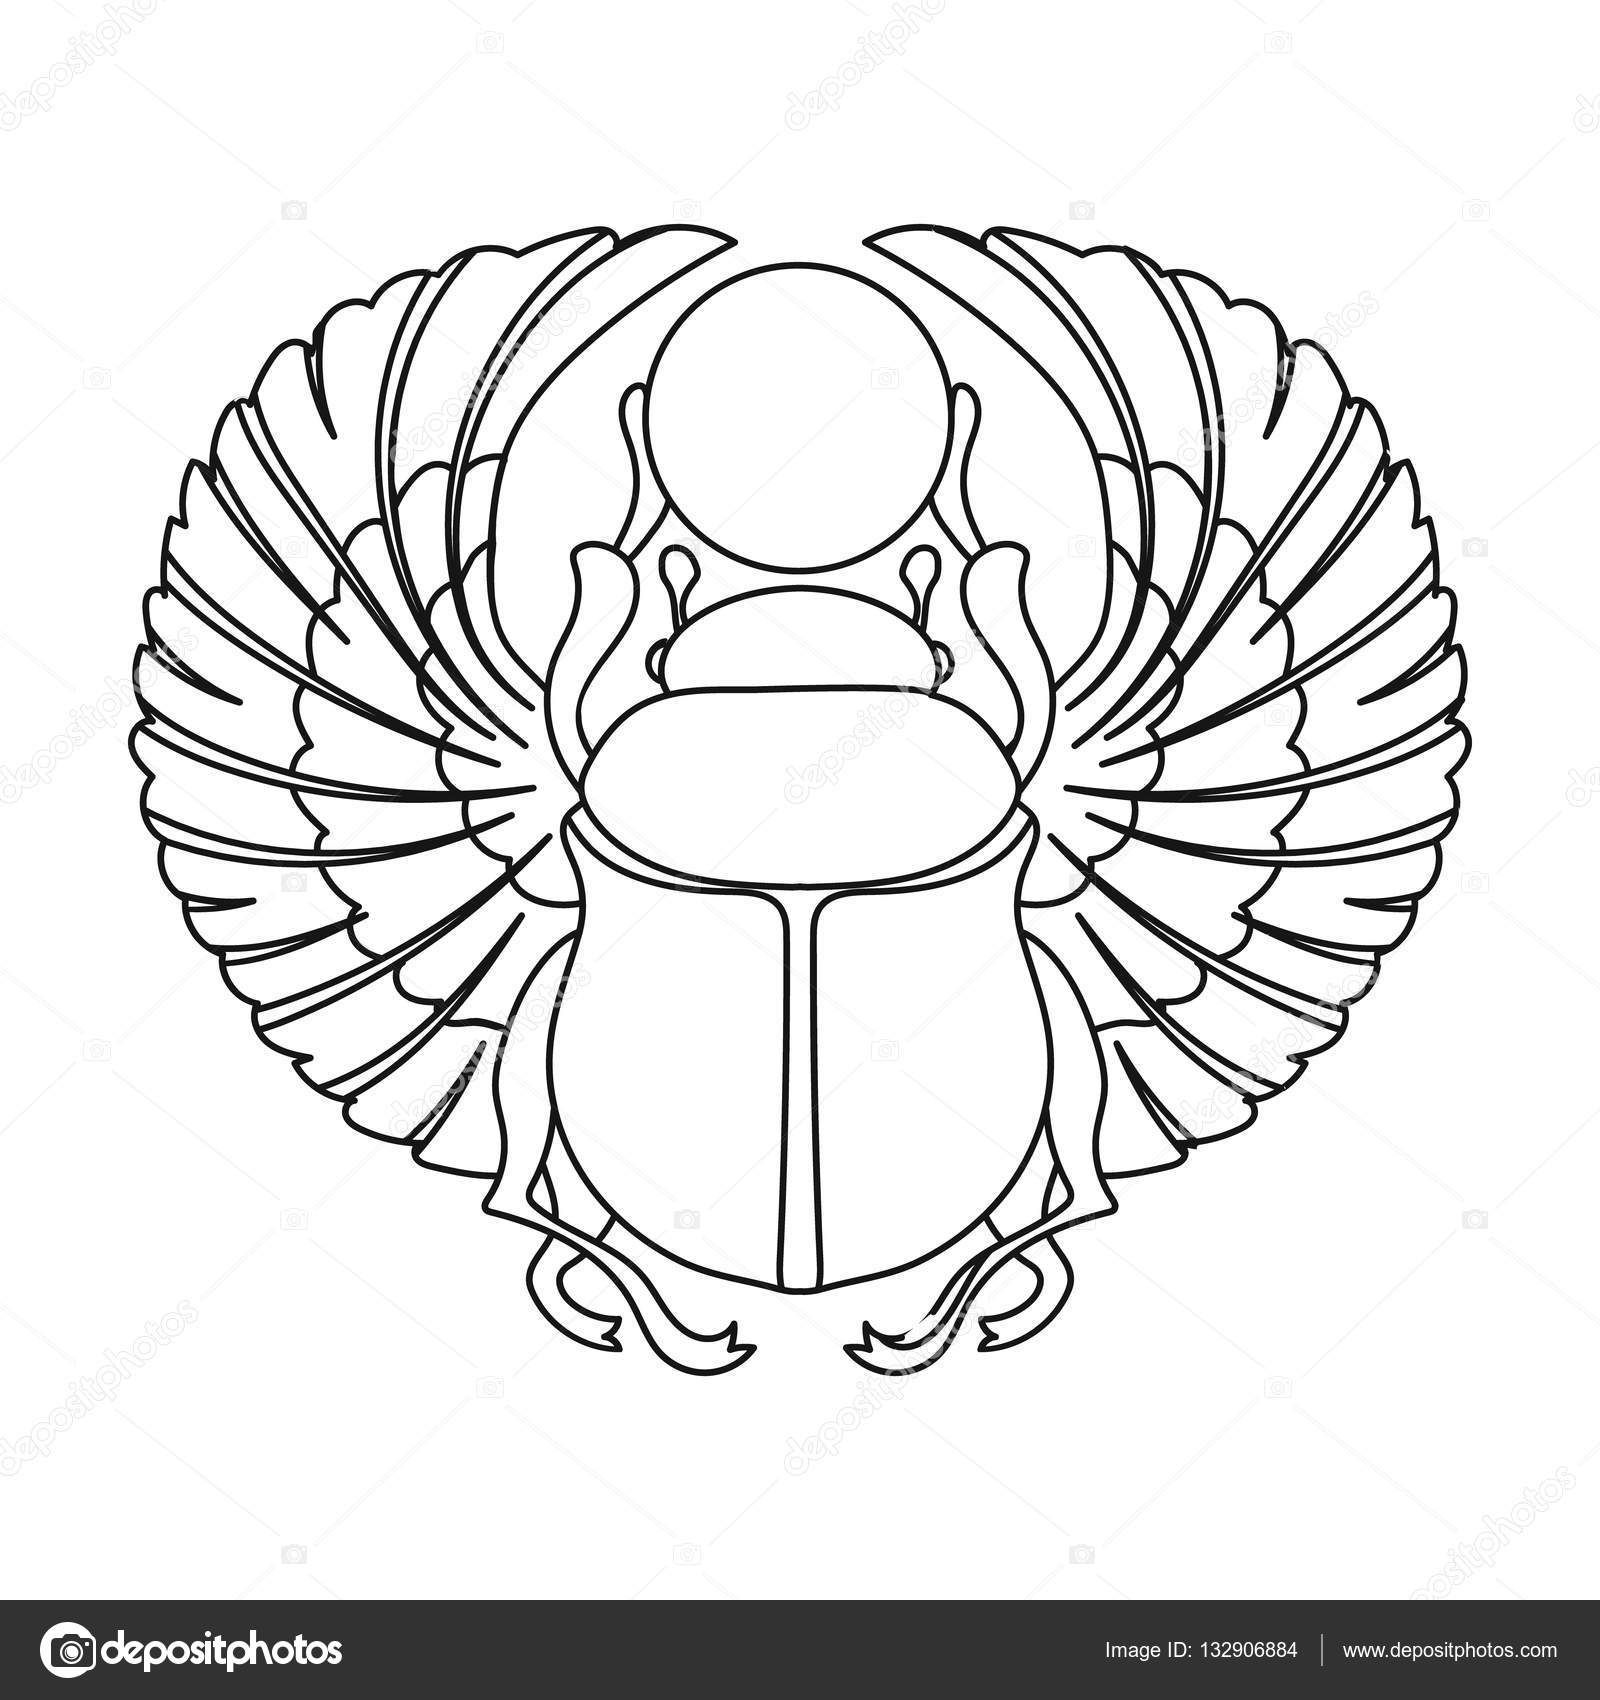 Image Result For Egyptian Scarab Symbol Reference Material